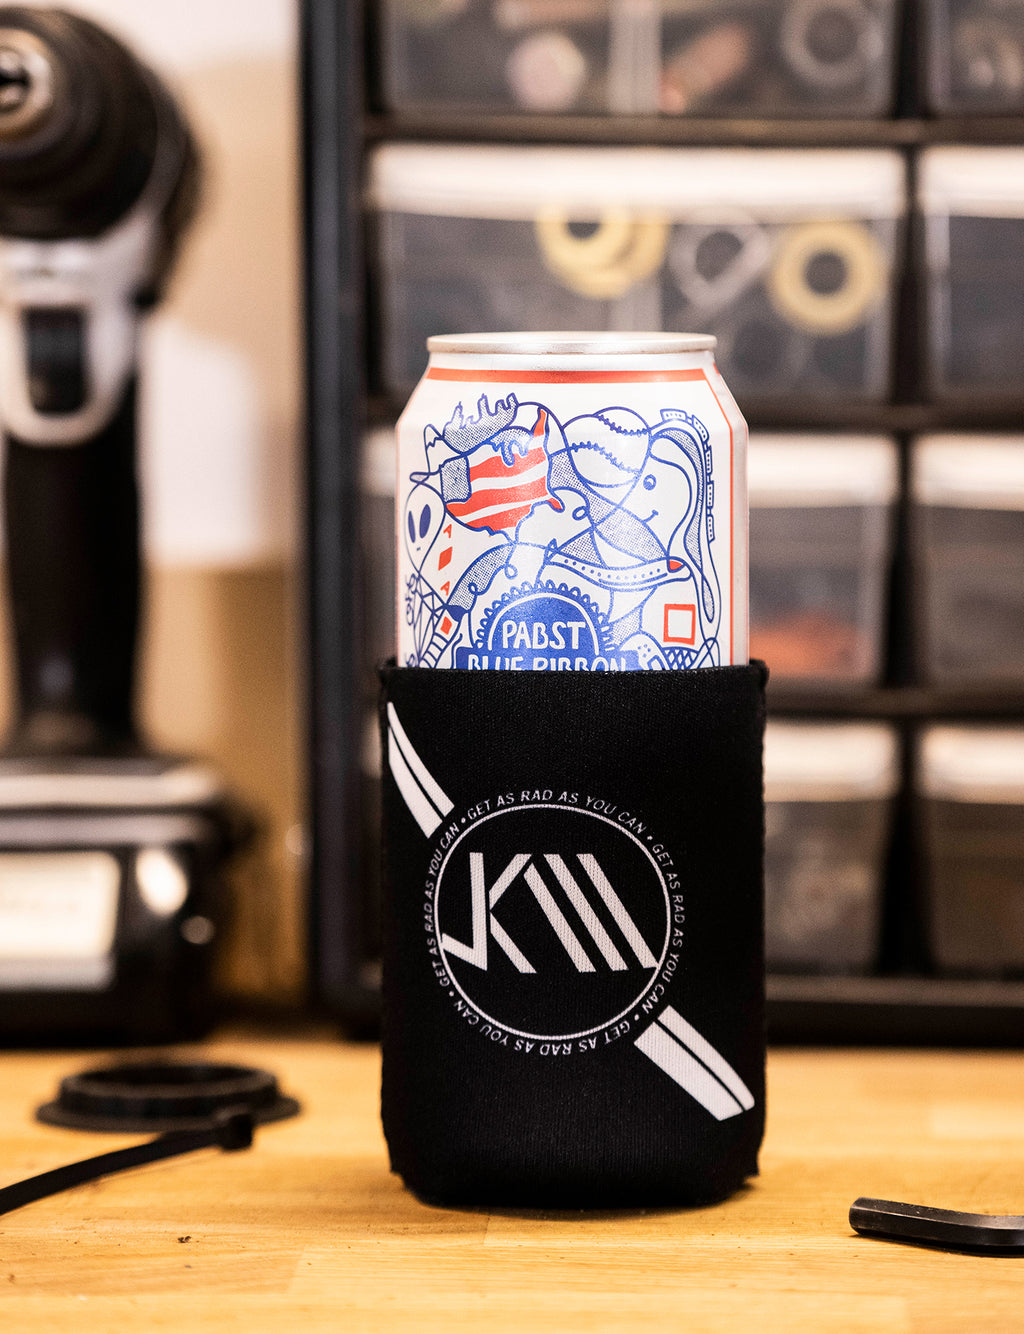 Jeff Kendall-Weed branded beer can koozie in black and white.